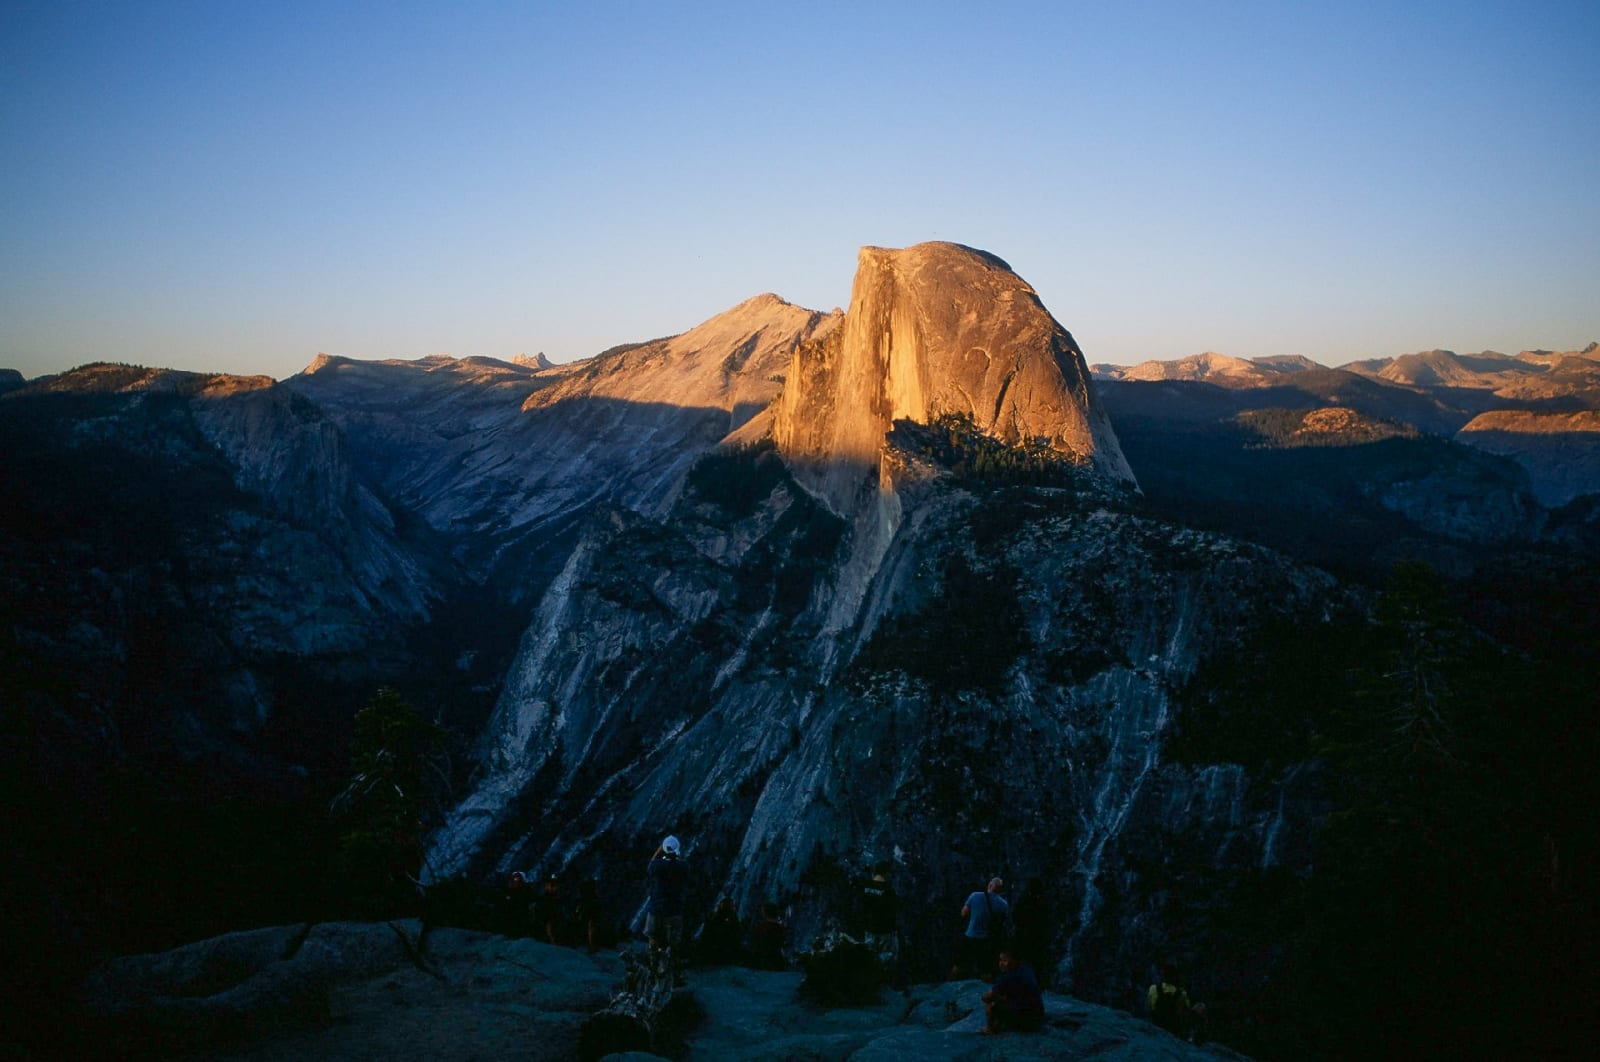 The time of sunset and dusk is magical. Summer, 2014. Yosemite National Park, CA.